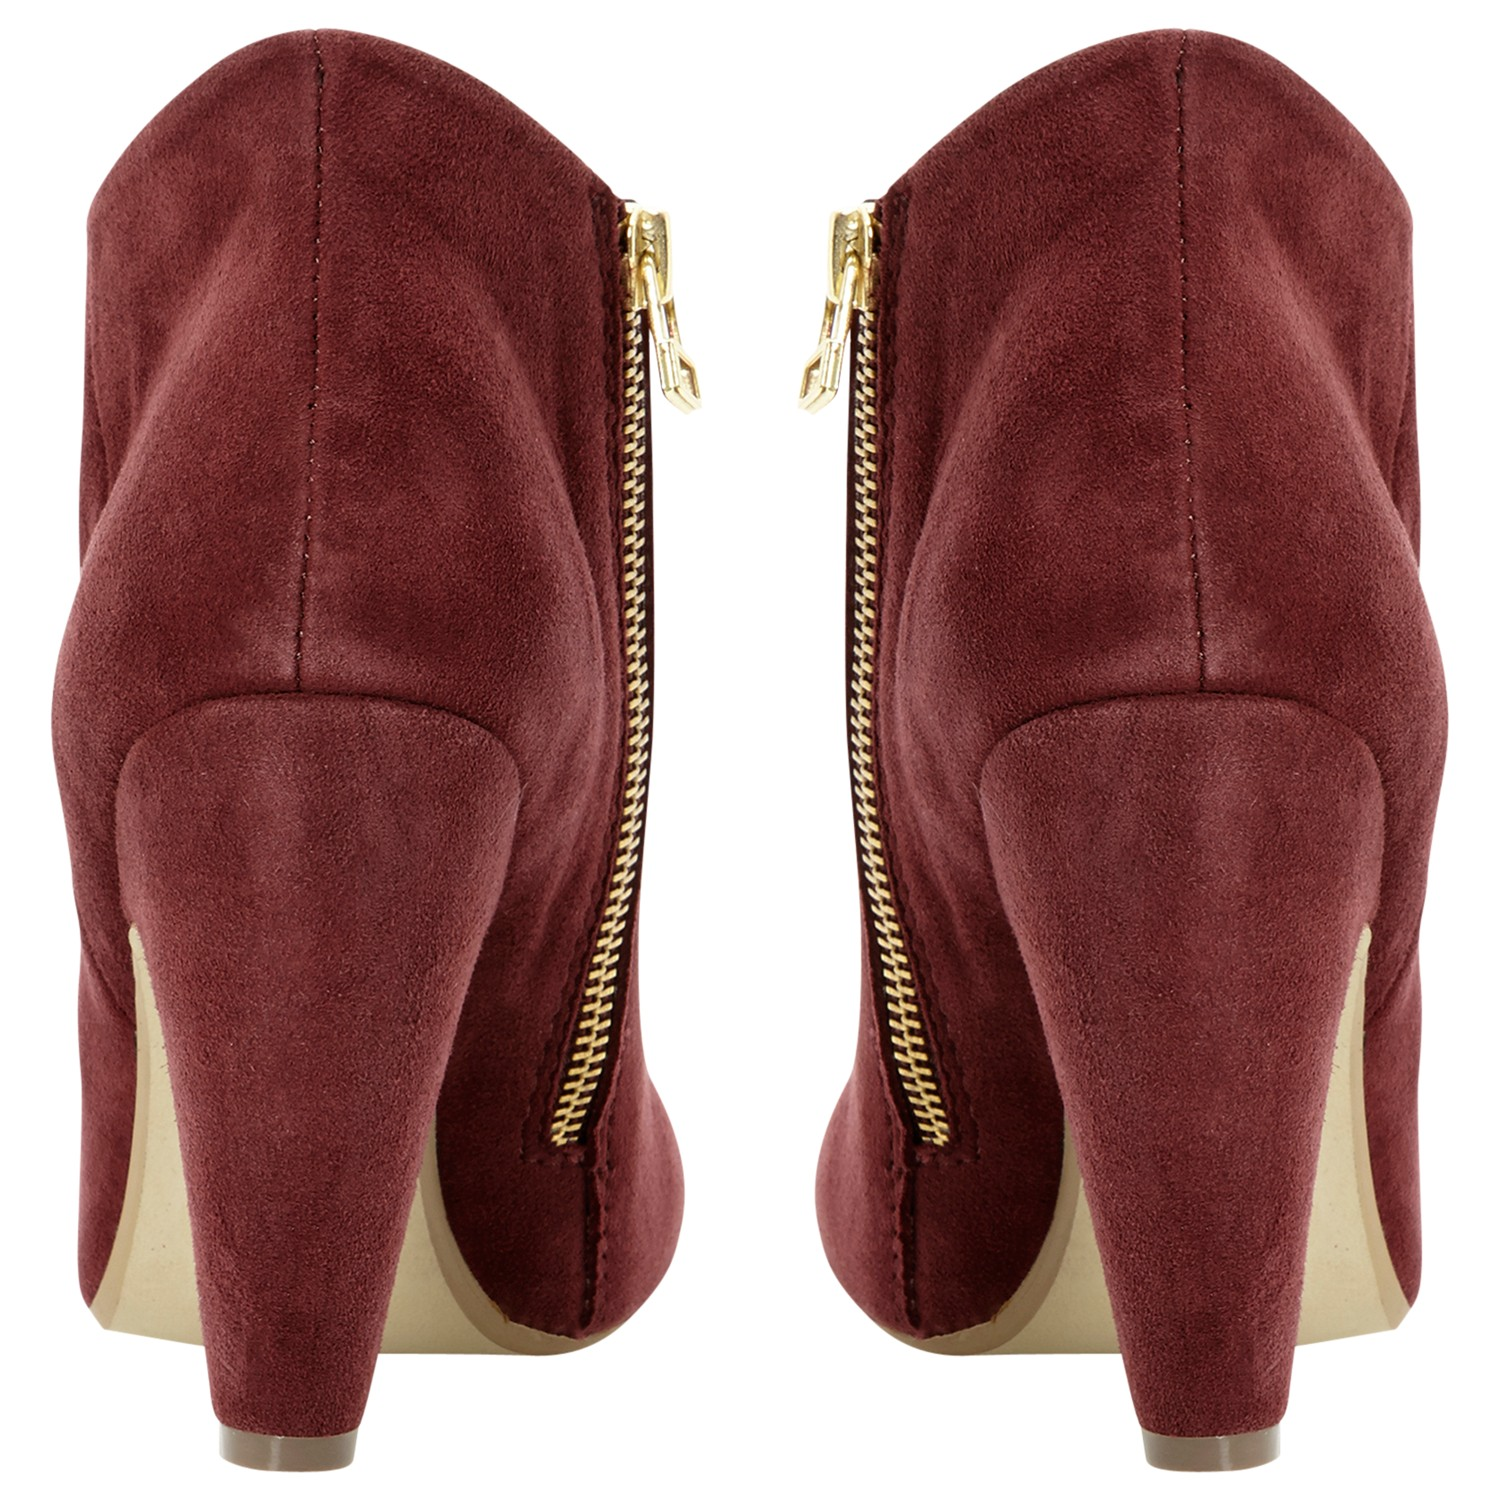 Steve Madden Panelope Suede Ankle Boots in Burgundy (Red)